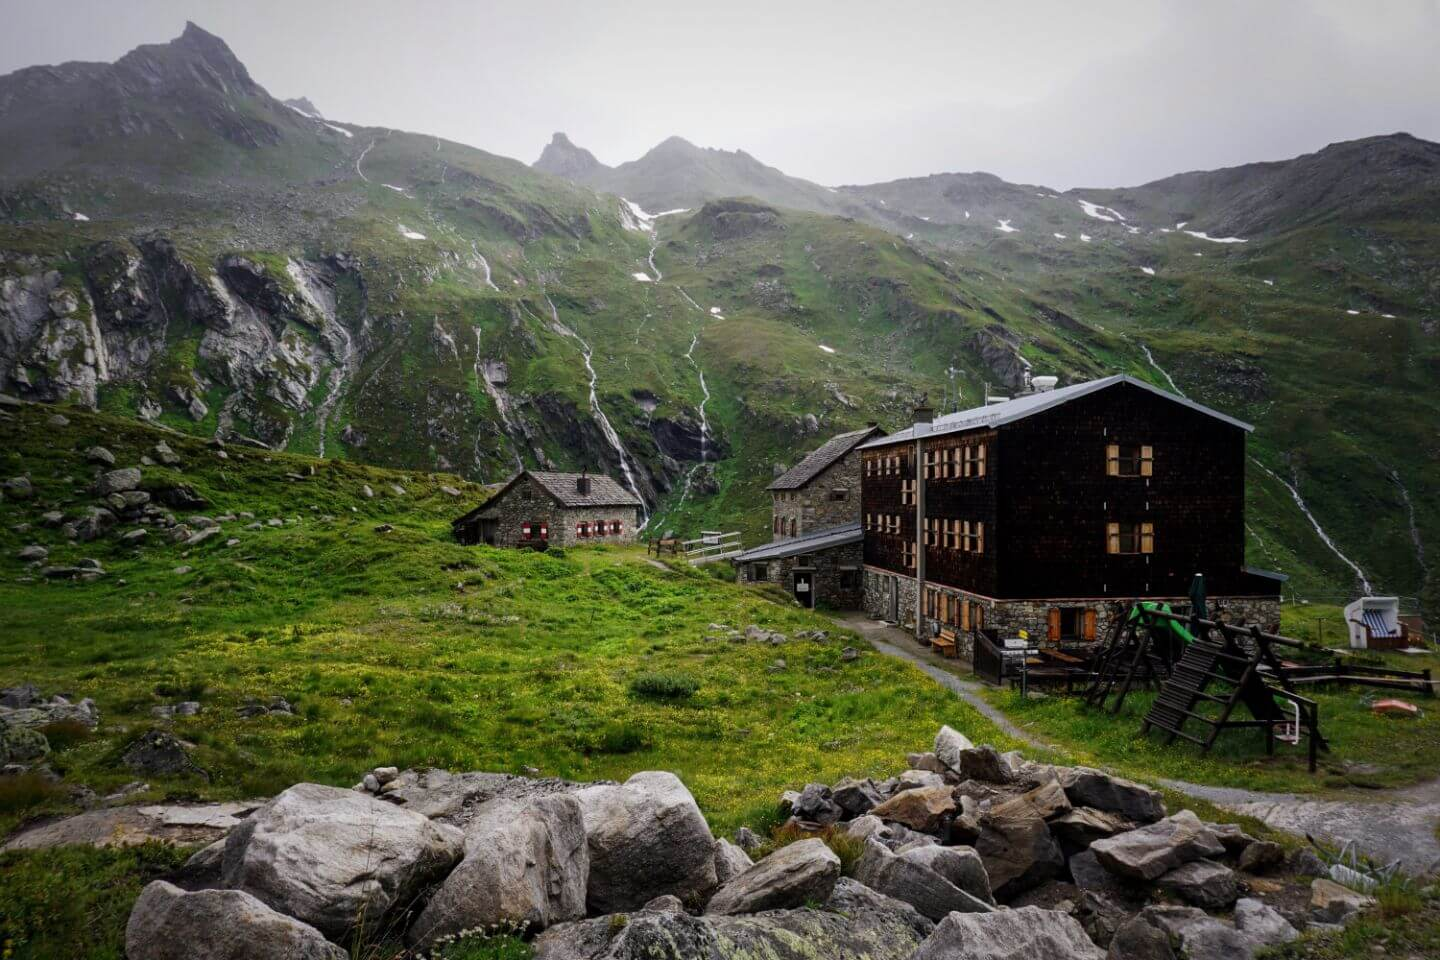 Essener Rostocker Mountain Hut - Venediger High Trail, Austria